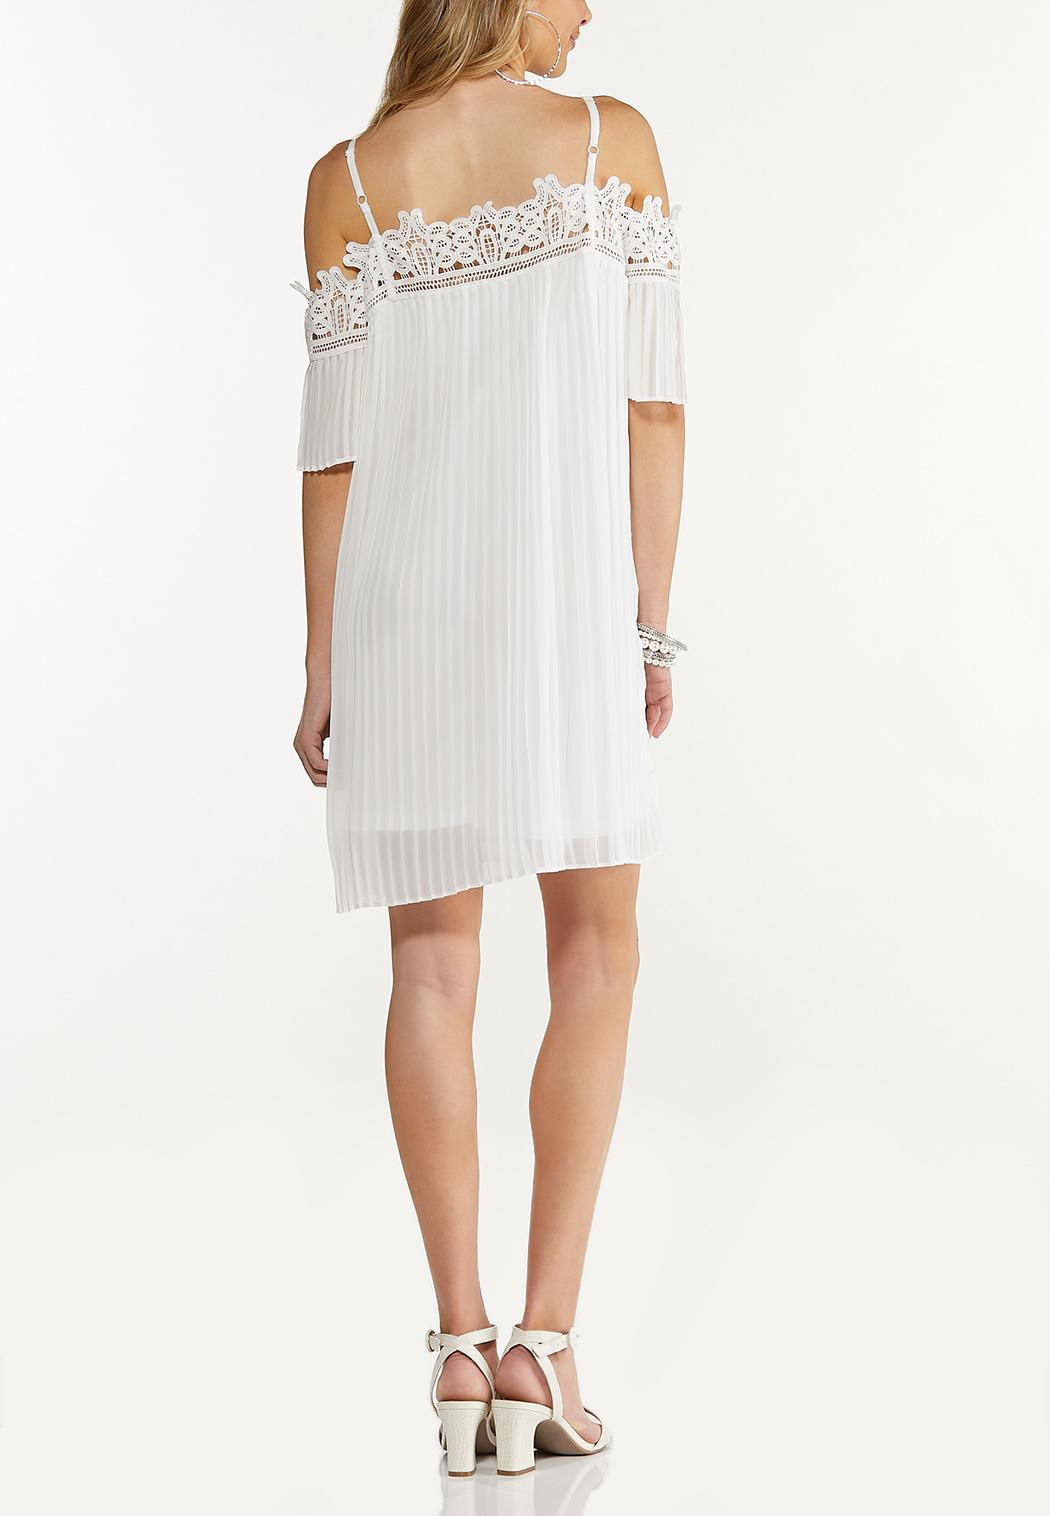 Cold Shoulder Pleated White Dress (Item #44274673)